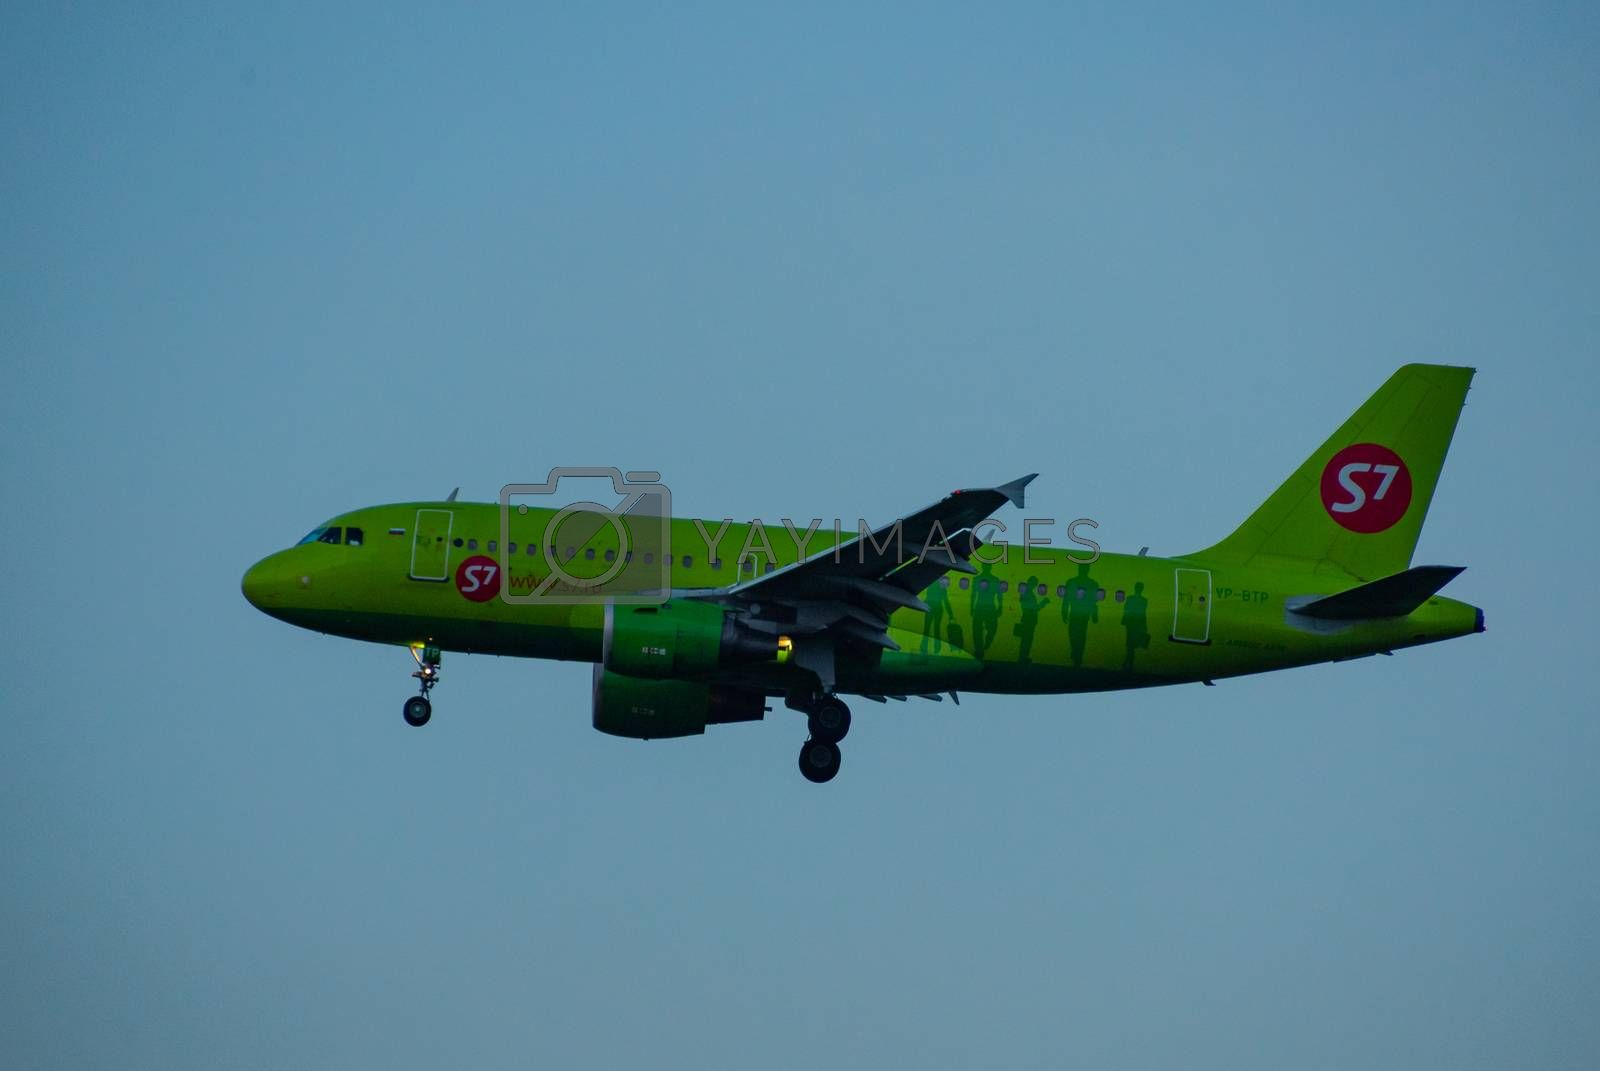 8 JULY 2018 Russia, Moscow. The aircraft Airbus A319 S7 Airlines is landing at the Domodedovo airport.